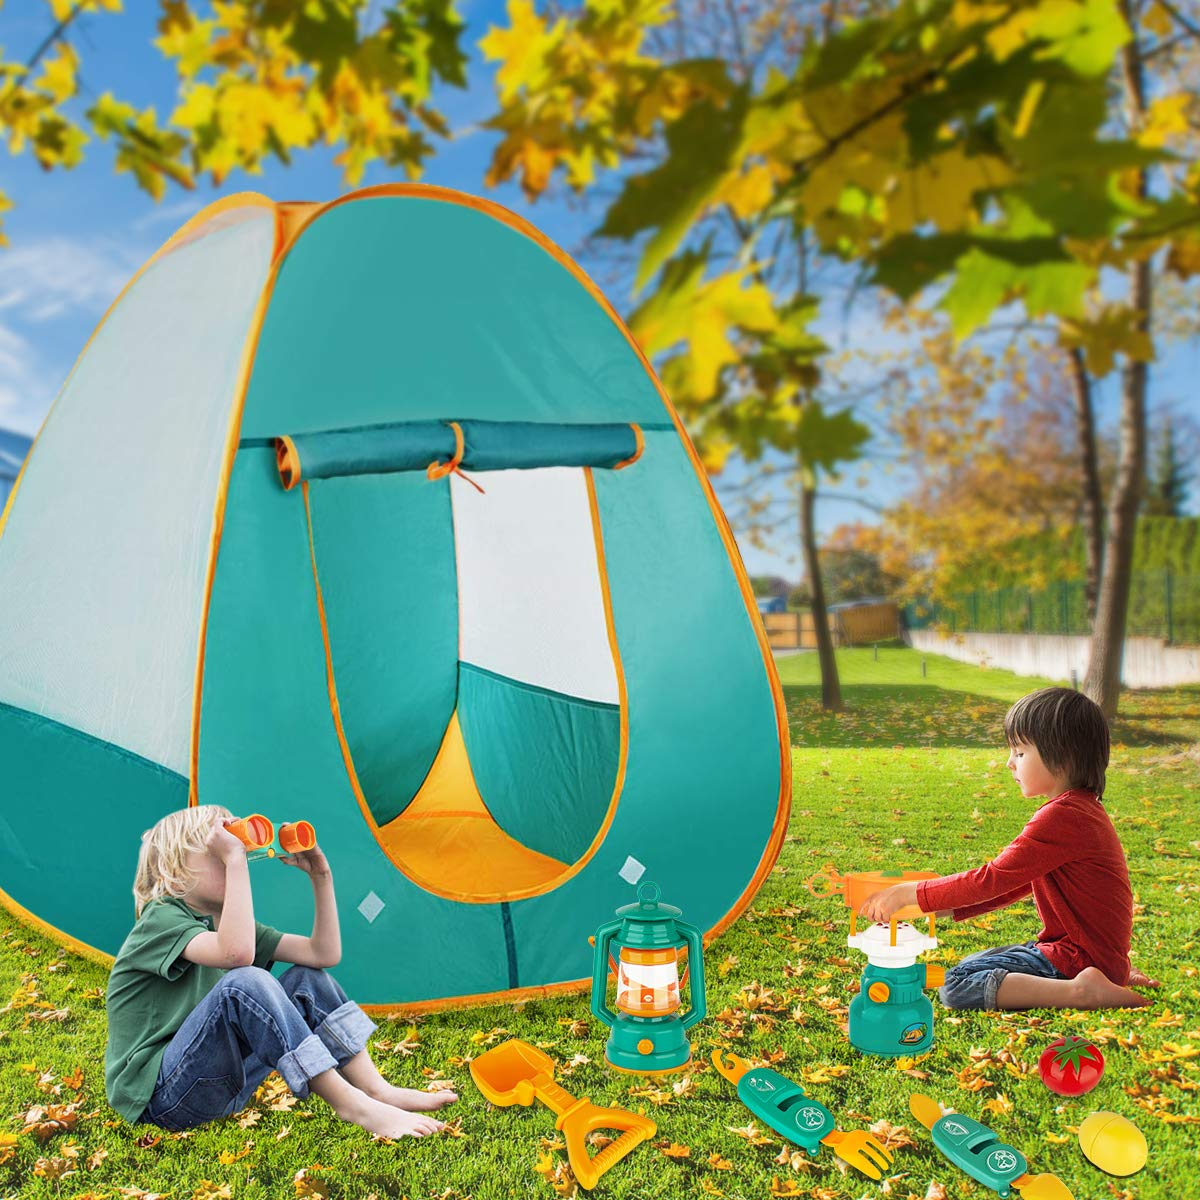 Indoor and Outdoor Camping Tools Pretend Play Set for Toddler Boys /& Girls Pop Up Play Tent with Kids Camping Gear Toys KAQINU 27 PCS Kids Camping Set